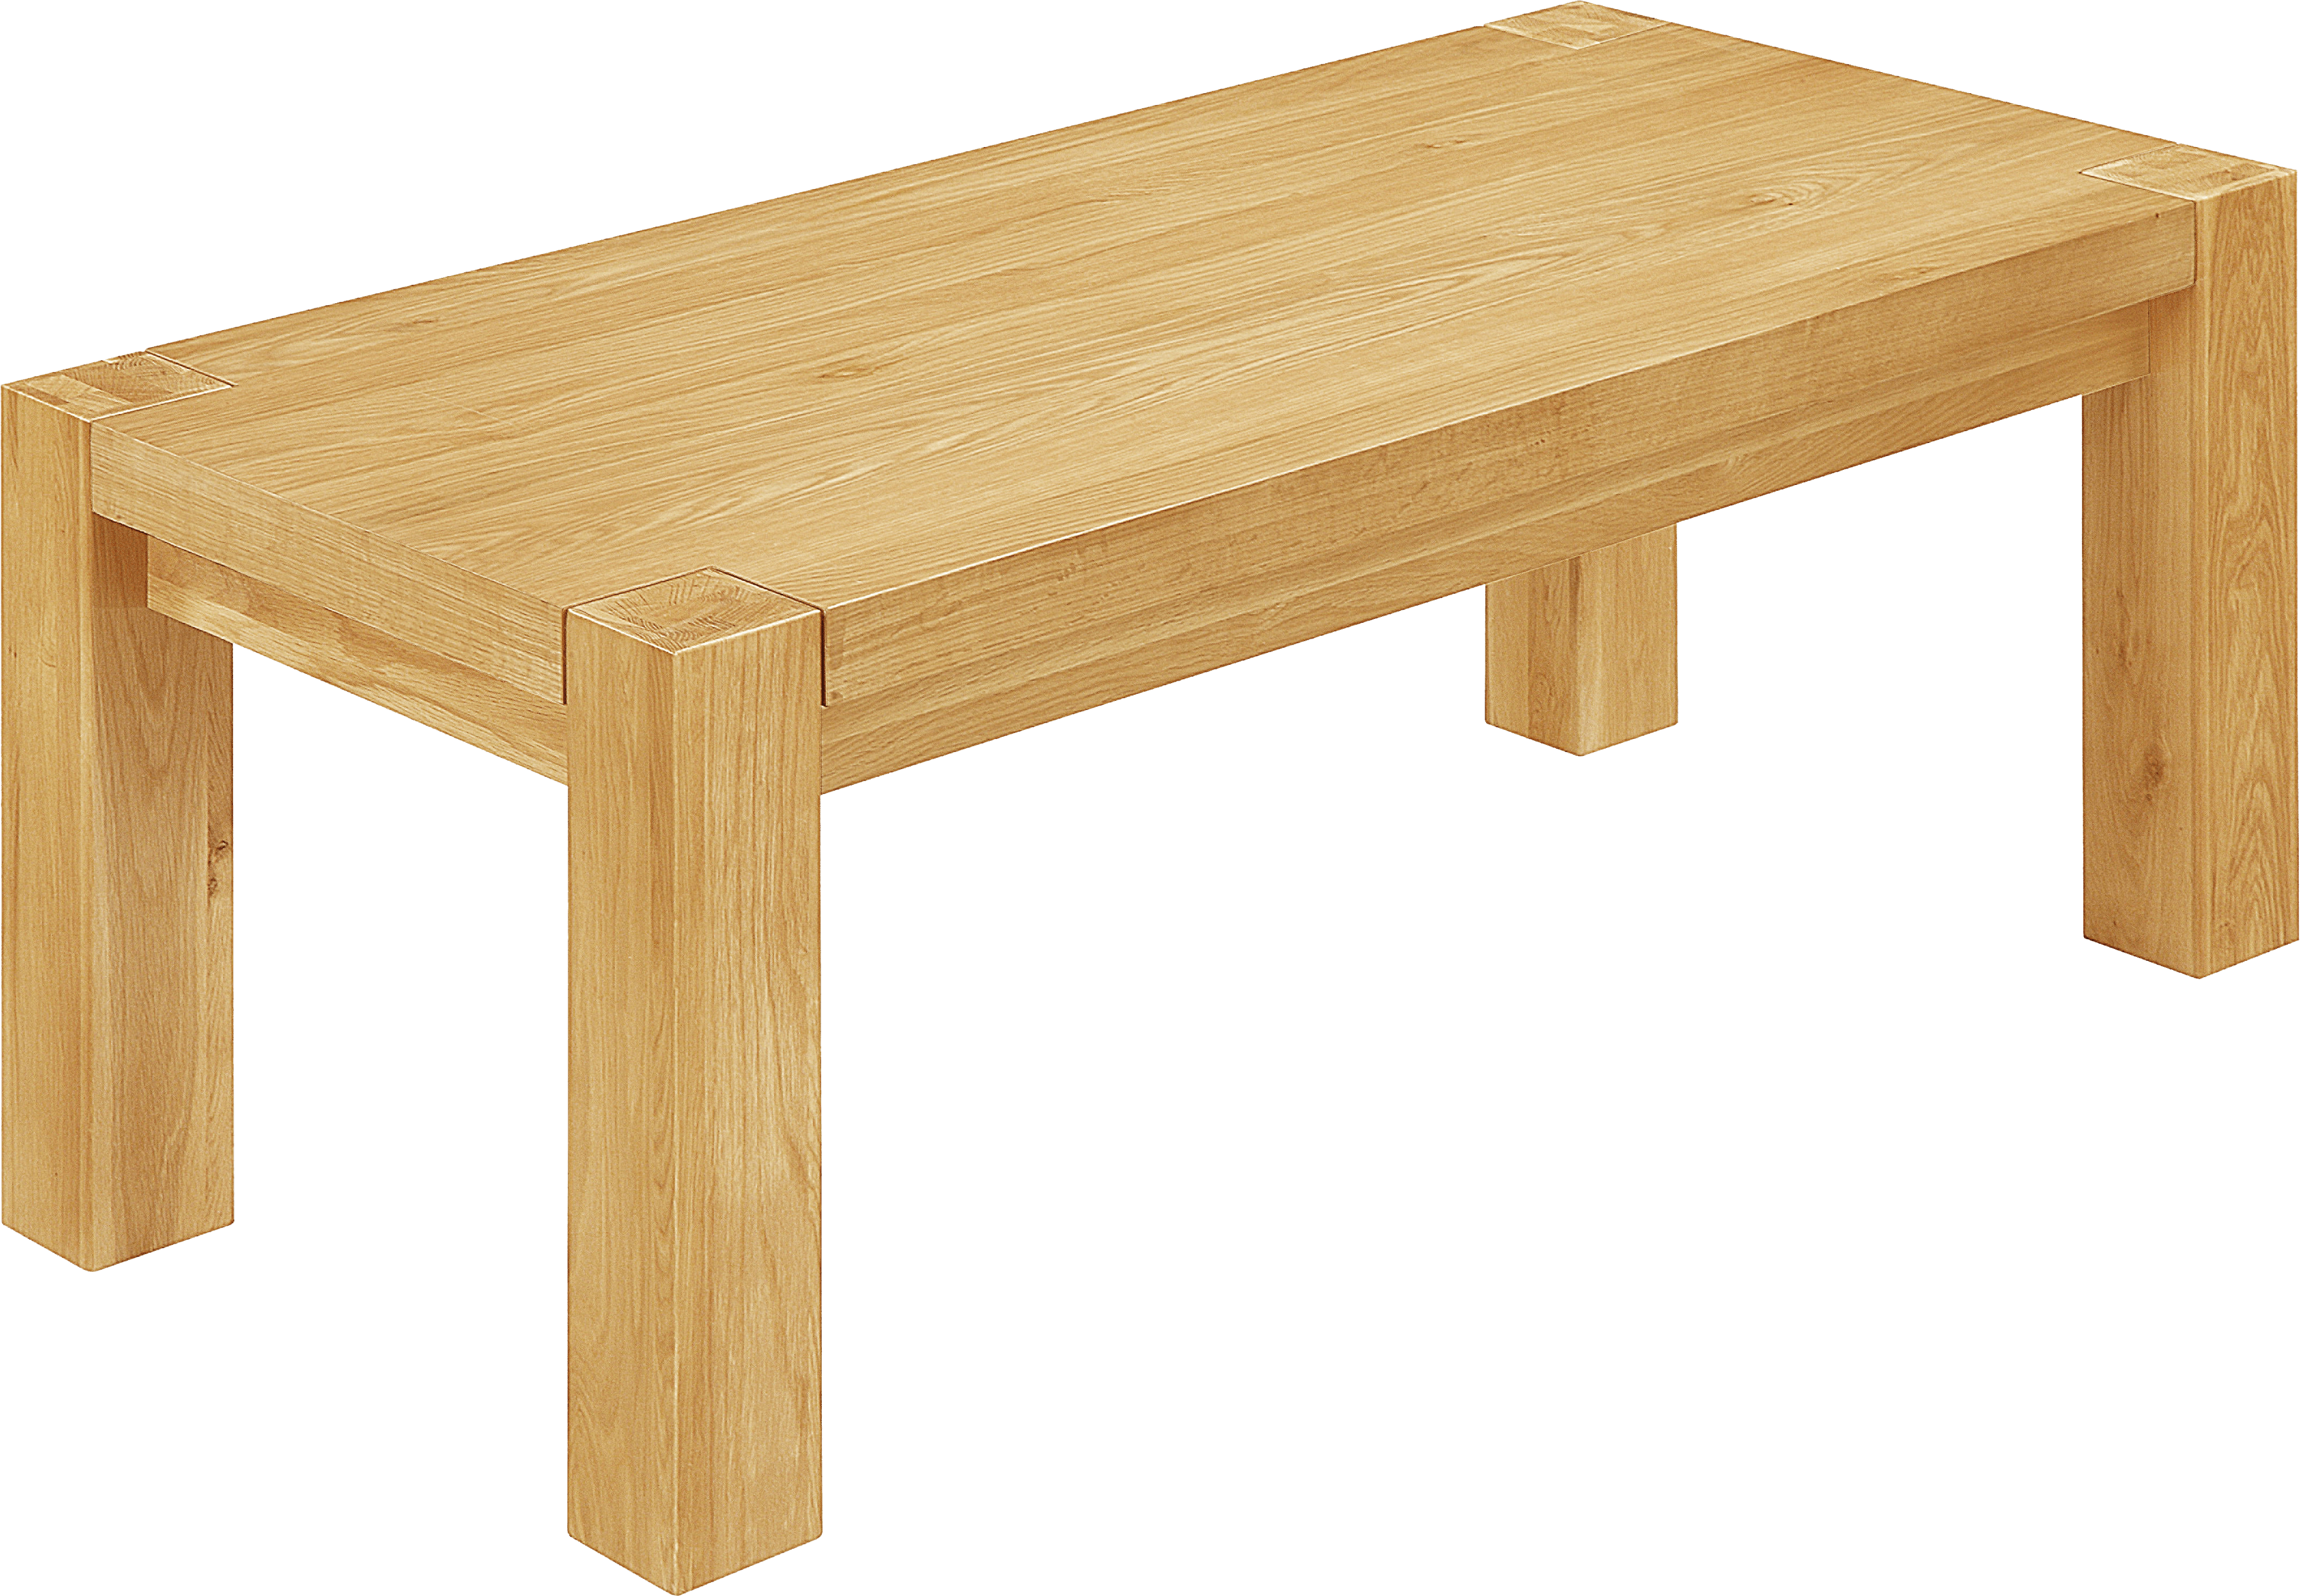 Download Table Png Image HQ PNG Image  FreePNGImg